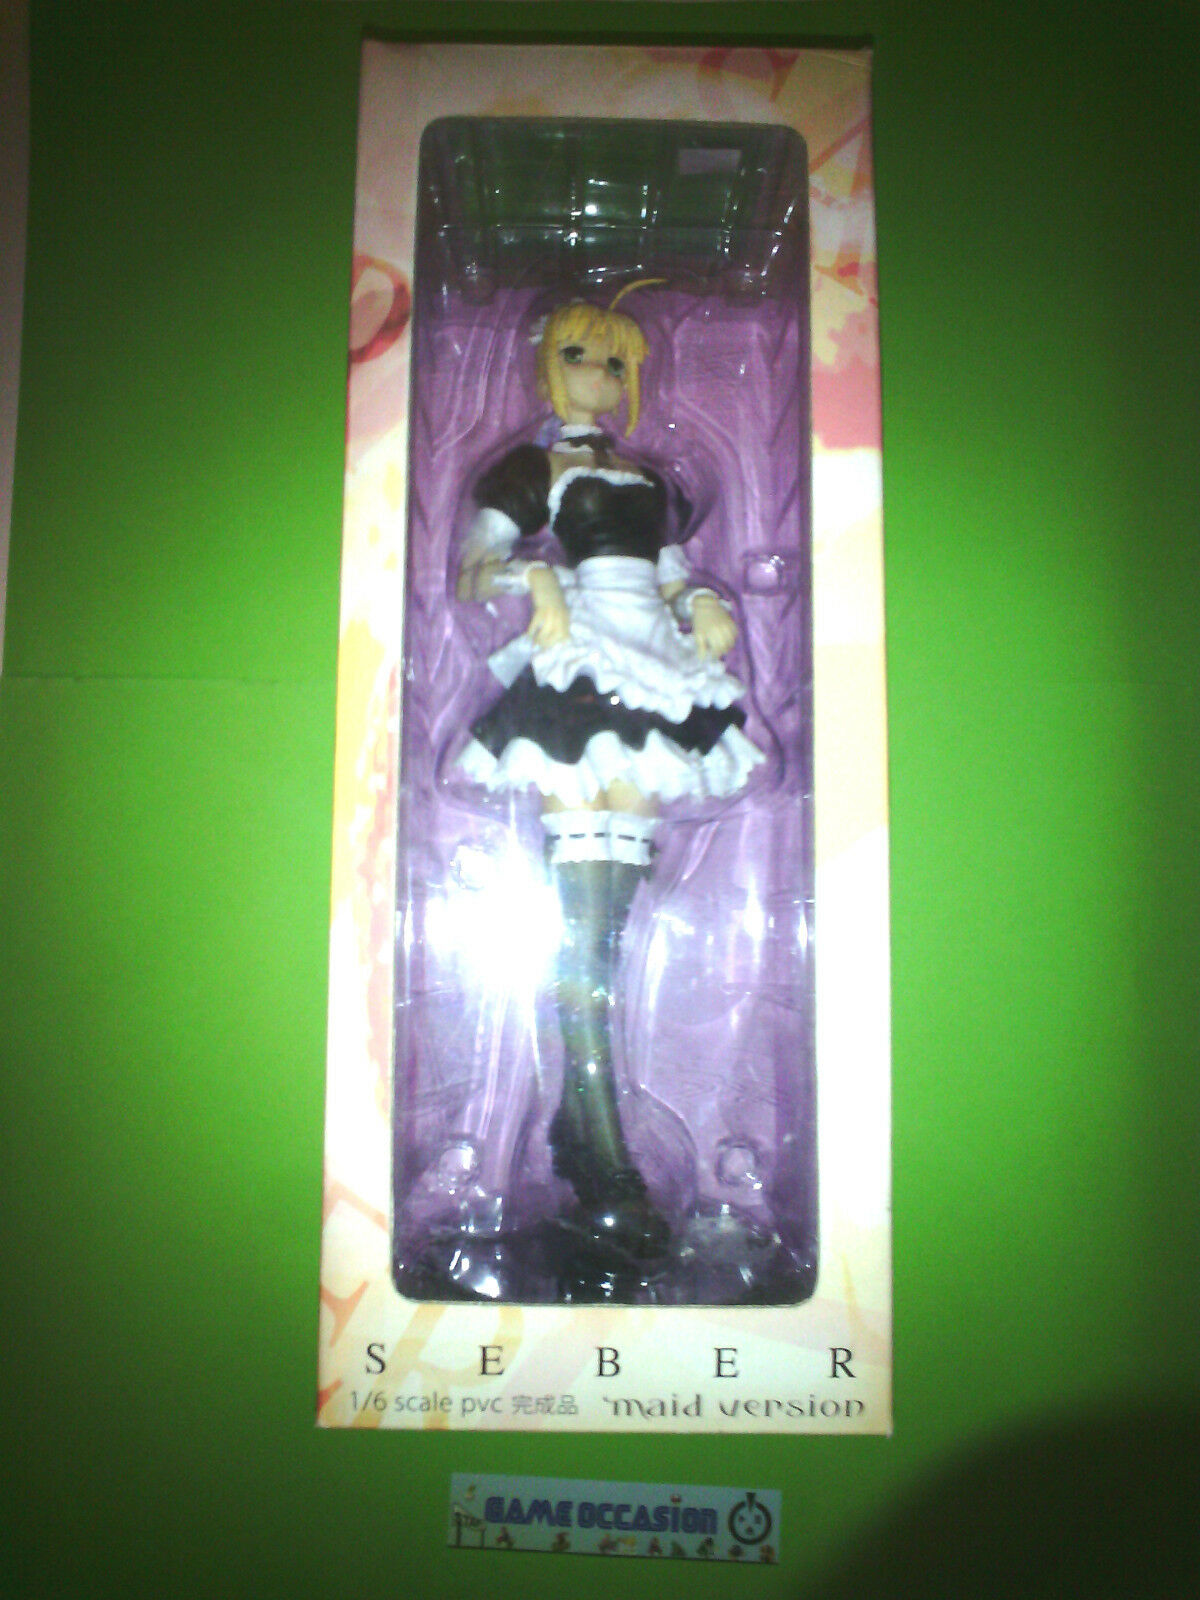 FIGURINE SEBER 1 6 SCALE PVC MAID VERSION - FATE HOLLOW ATARAXIA